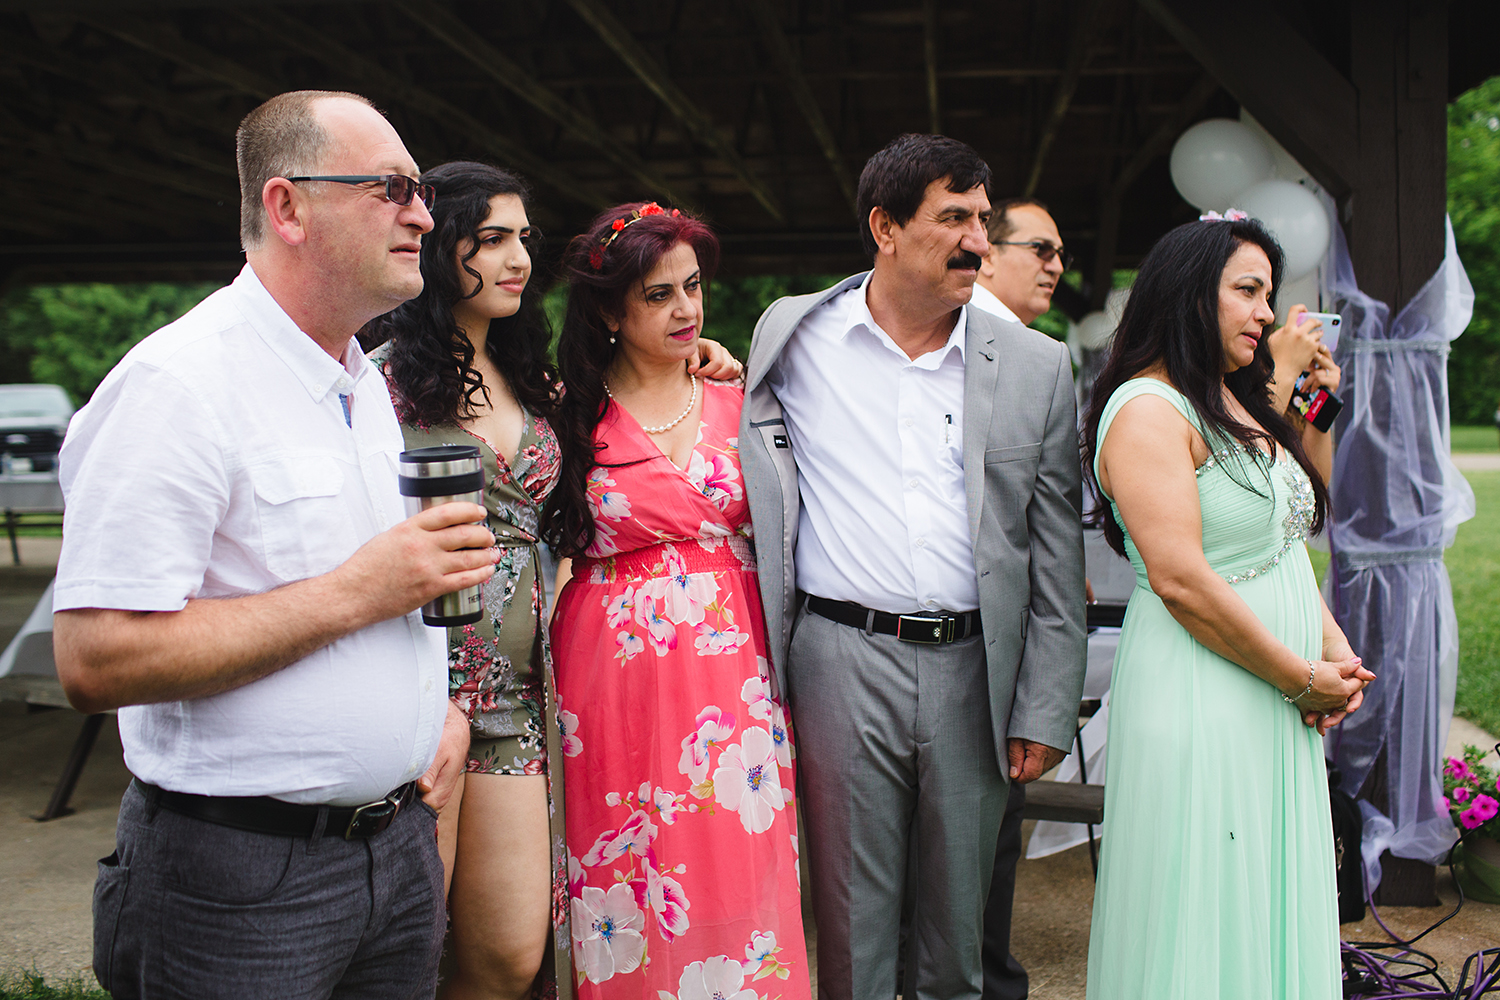 guelph-conservation-area-wedding-12.jpg